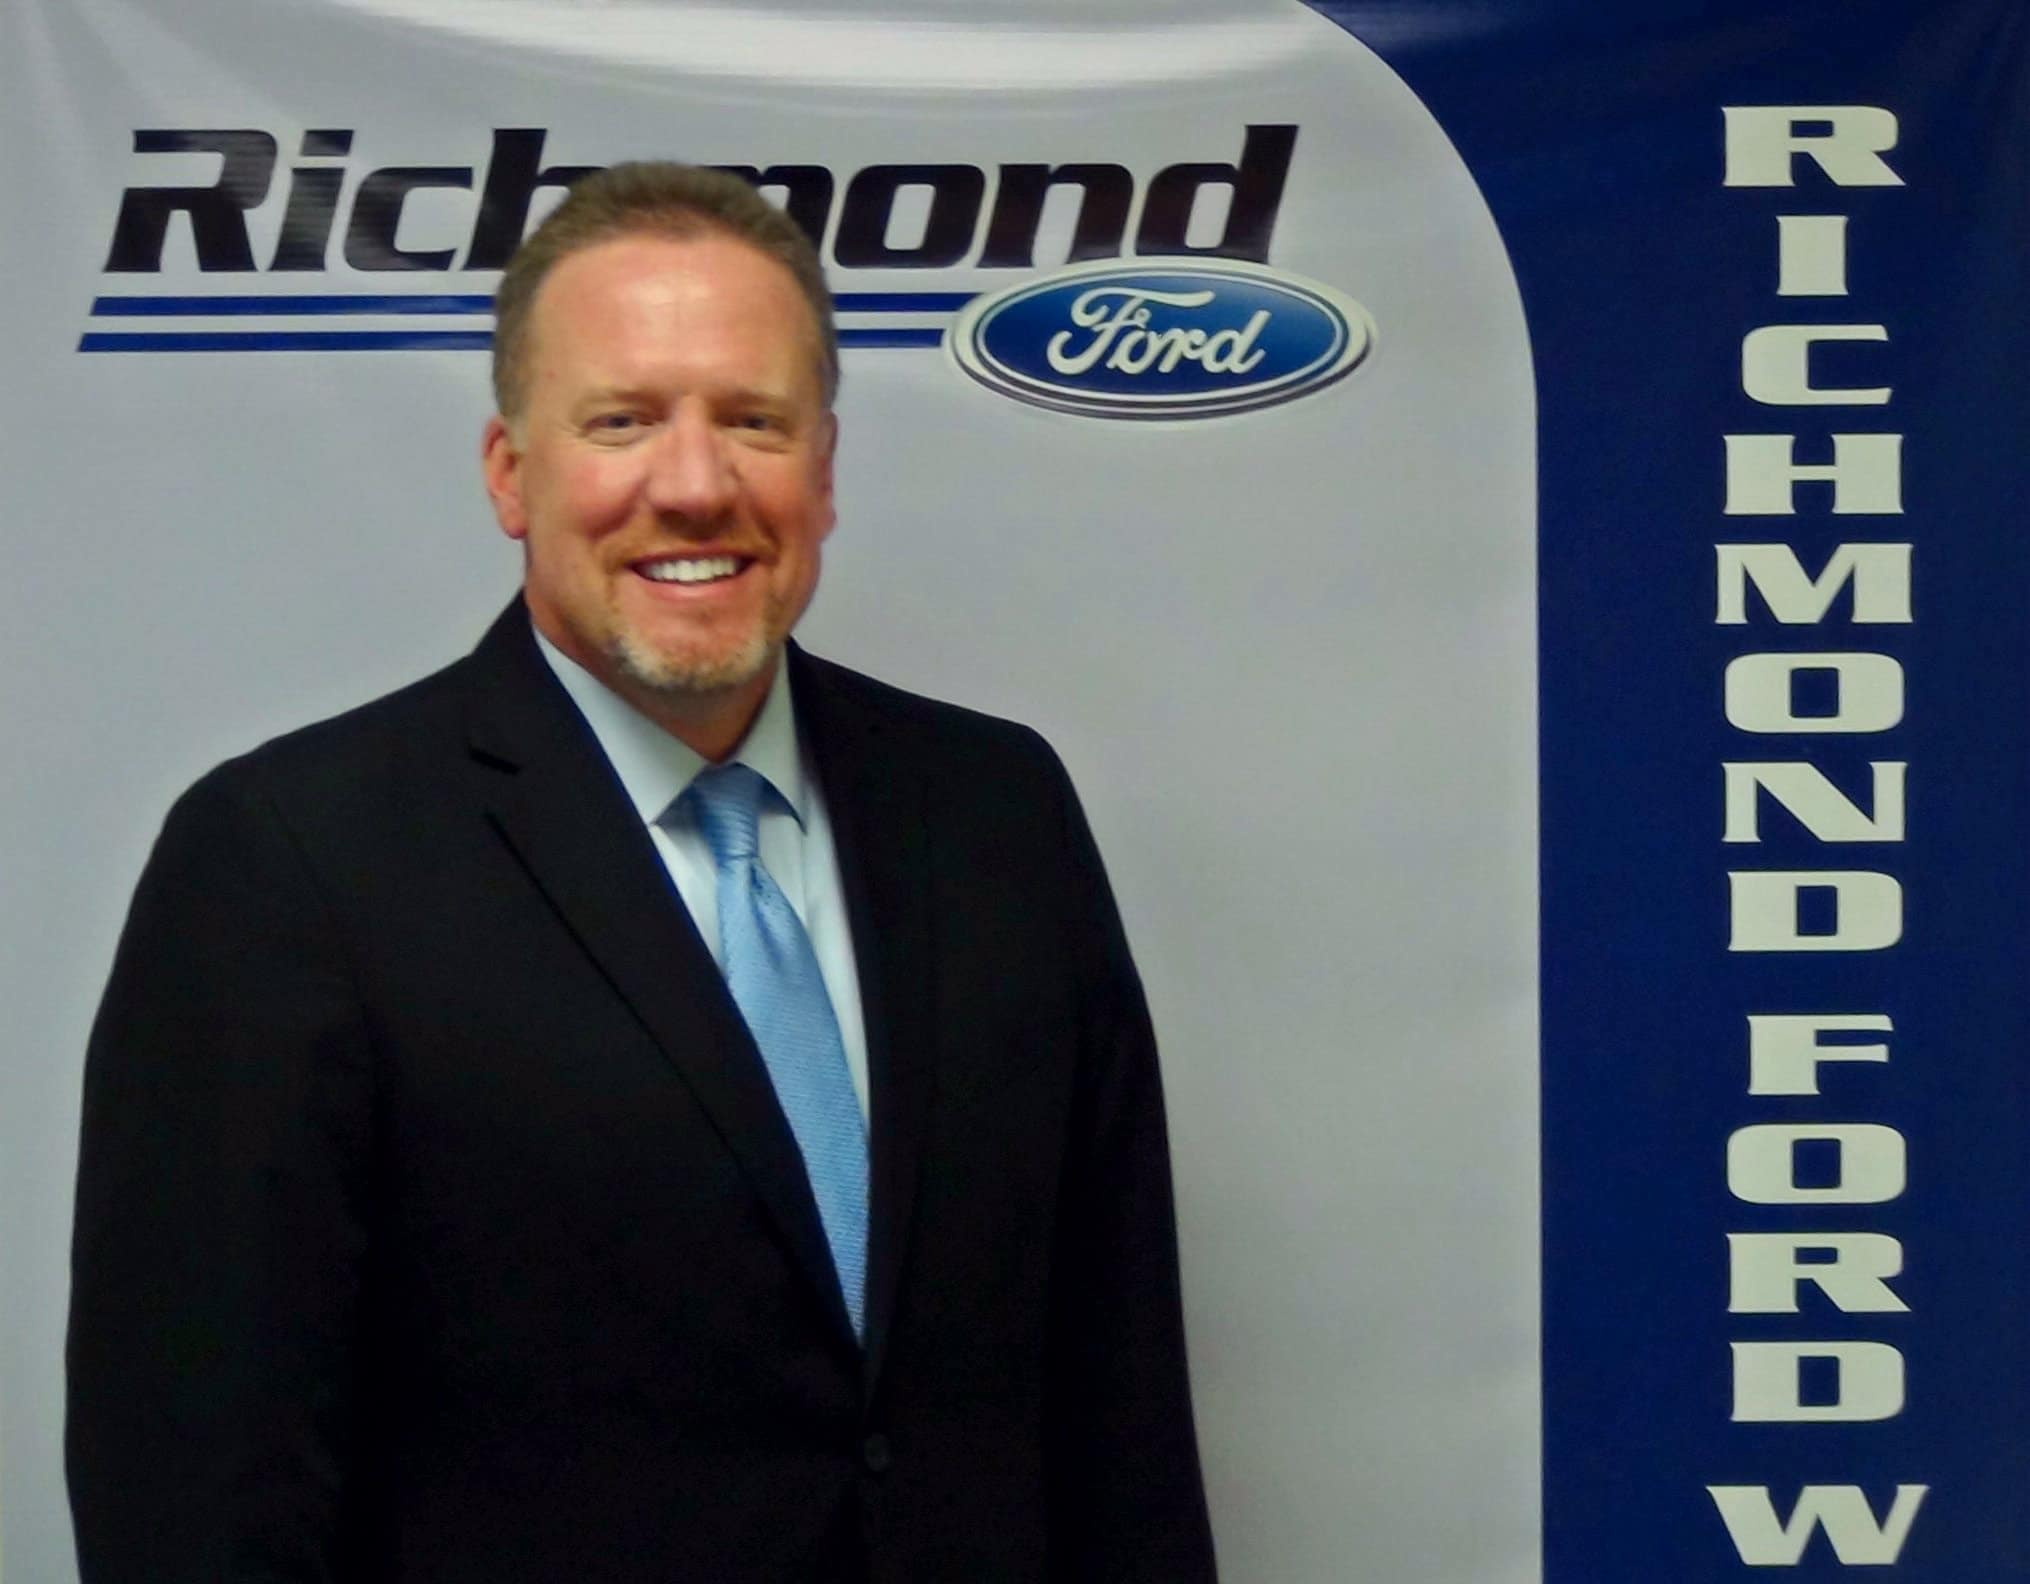 Richmond Ford West Richmond Ford West Welcomes Mark